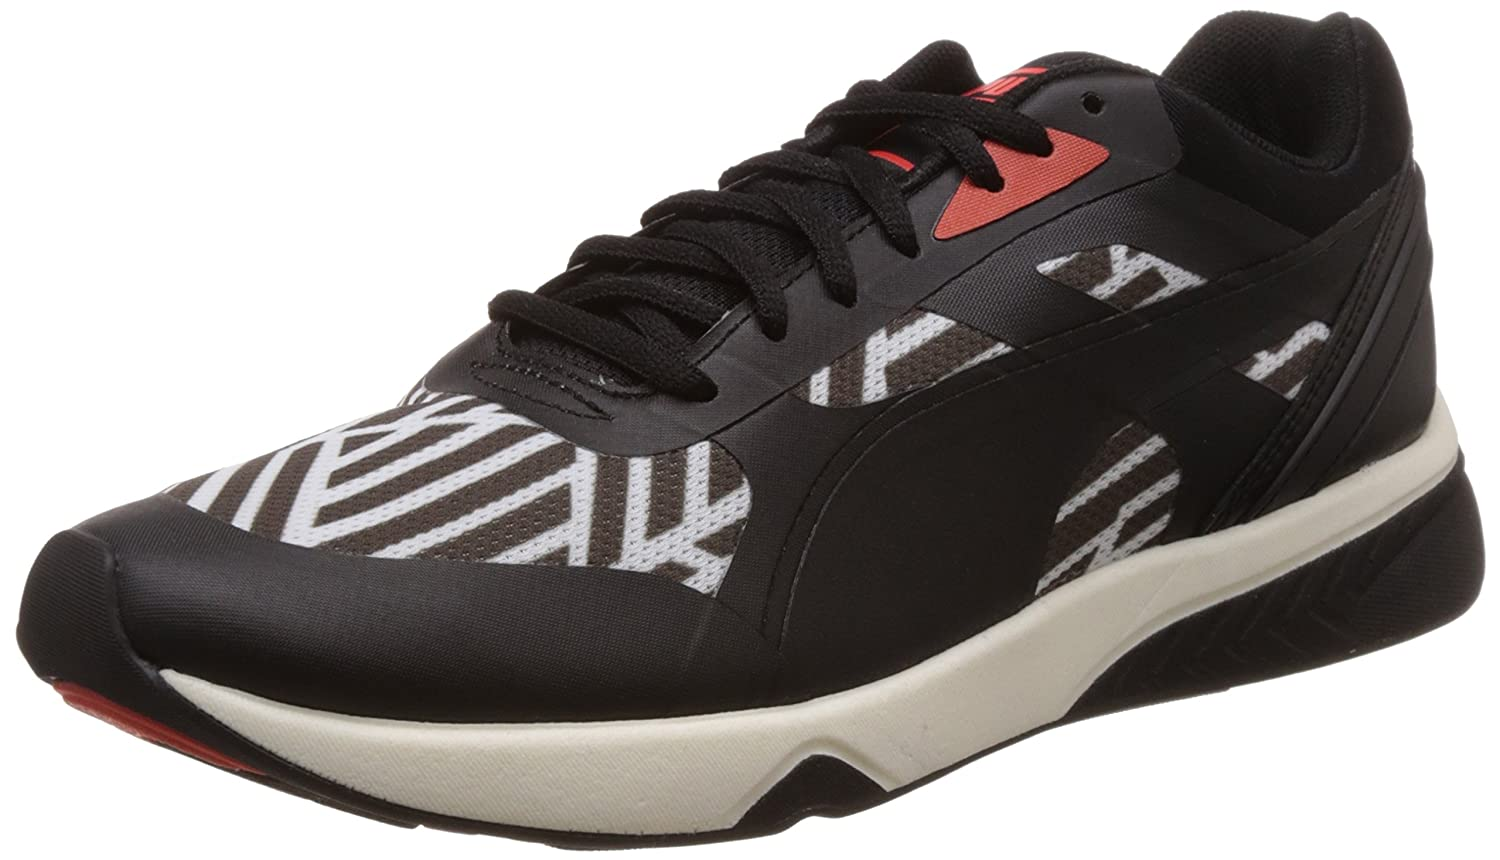 Puma Men s evoSPEEDCricketSpike1.4 Cricket Shoes  2199 (8999) http   www. amazon.in Puma-evoSPEEDCricketSpike1. 8ab8e6cf5b